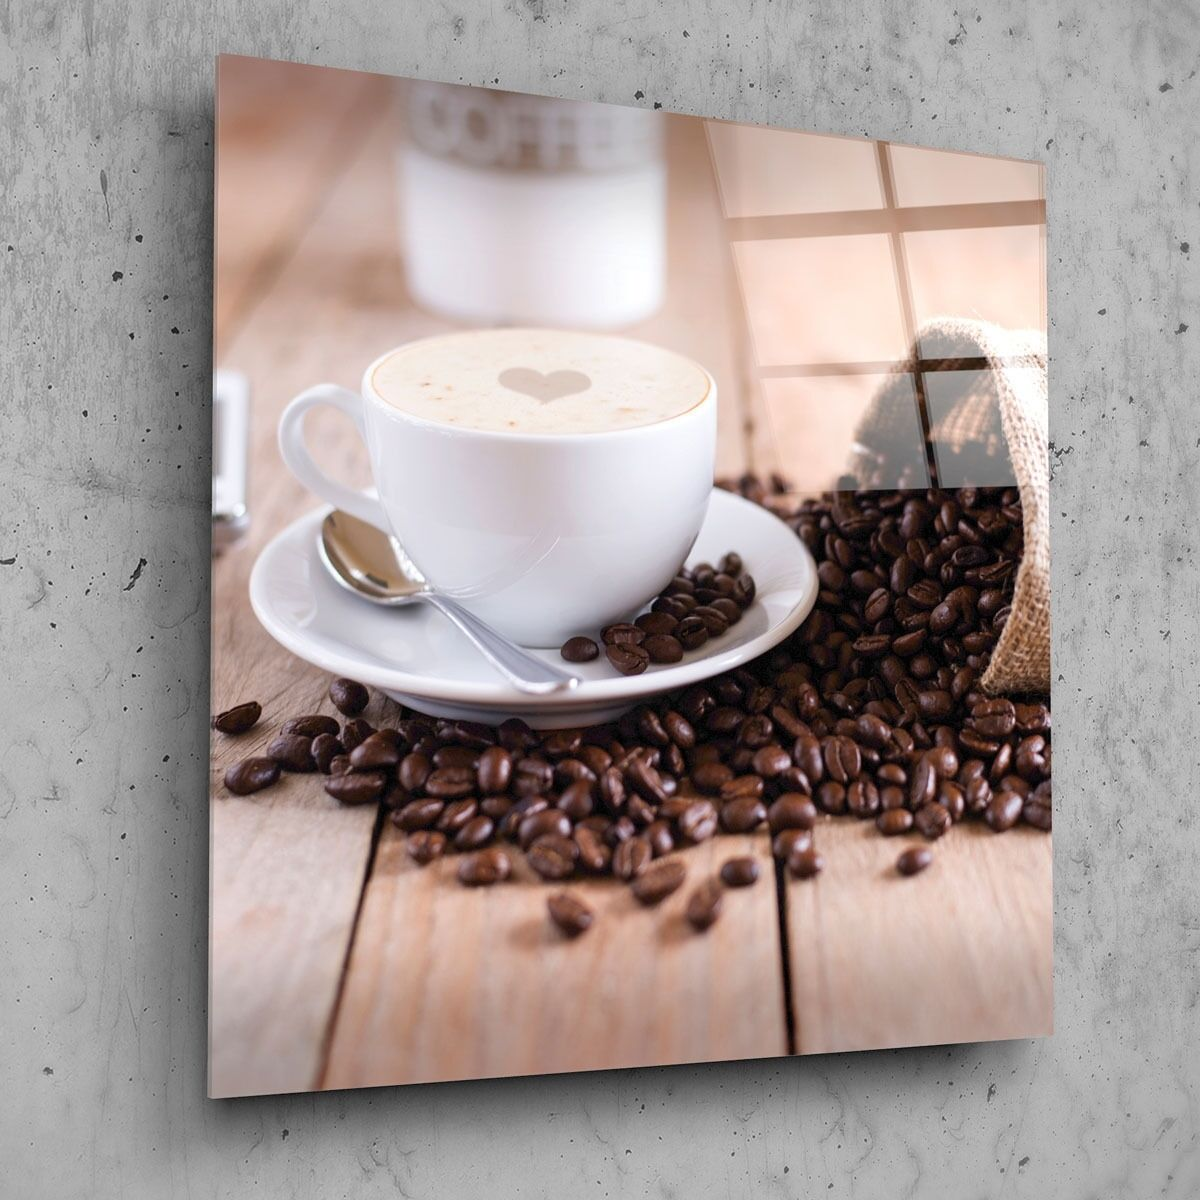 70x70cm Wall Art Glass Print New Picture Kitchen Coffee Beans Food p70221